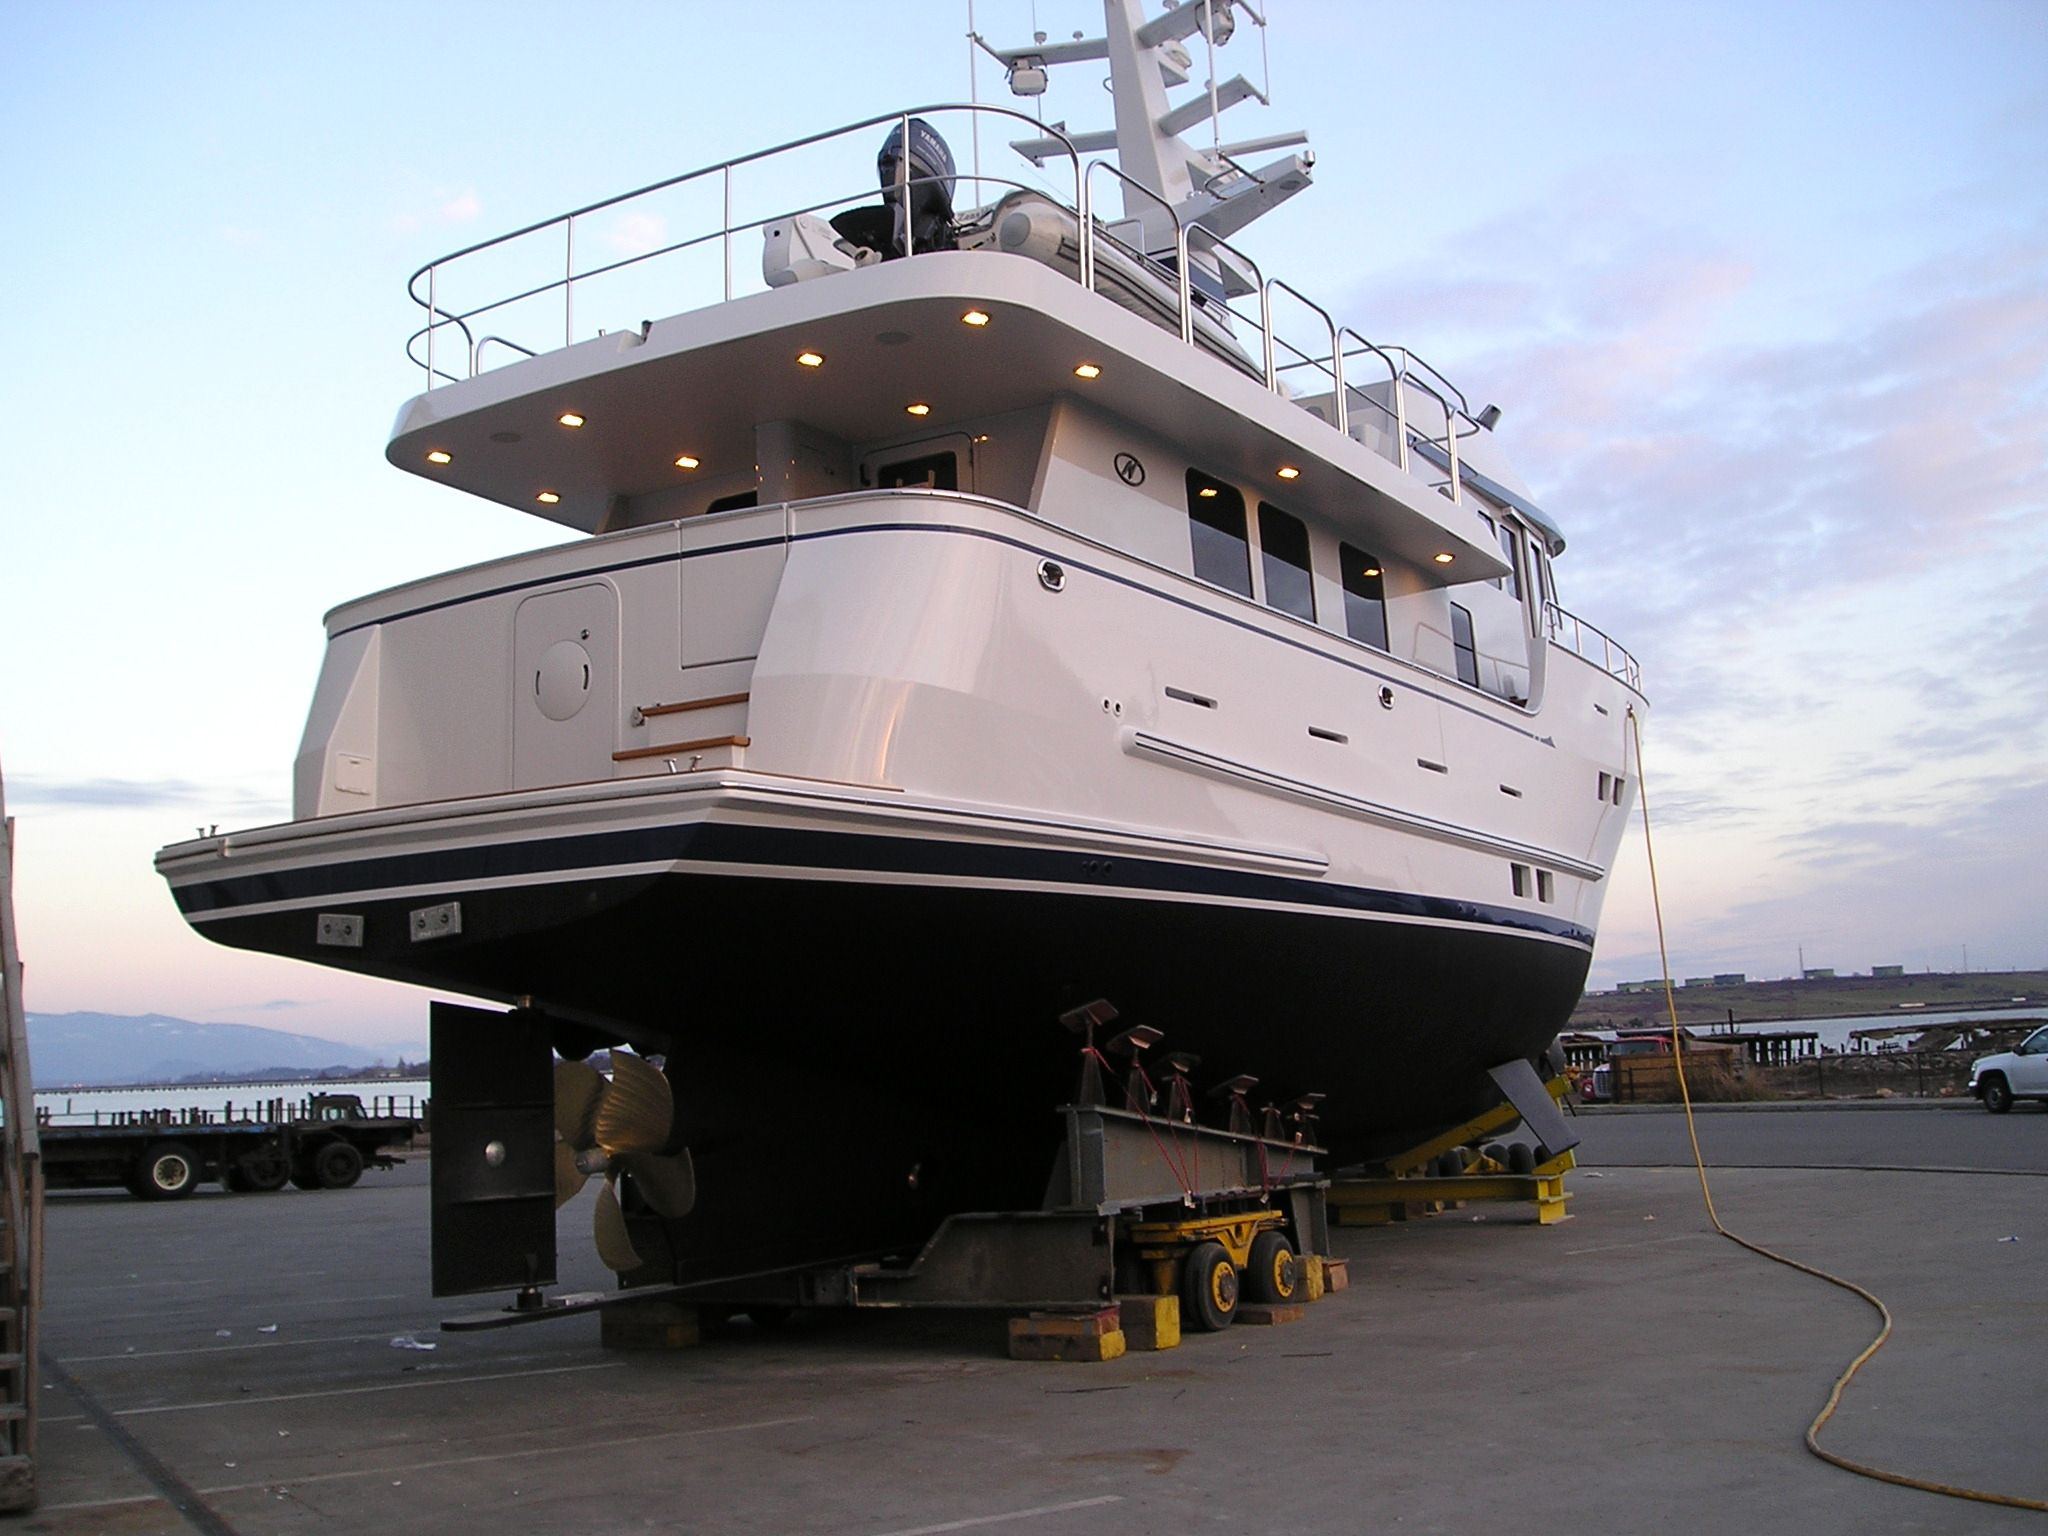 A beautiful Northern Expedition Yacht at home at her factory in Annacortes Washington. (I do get around!)